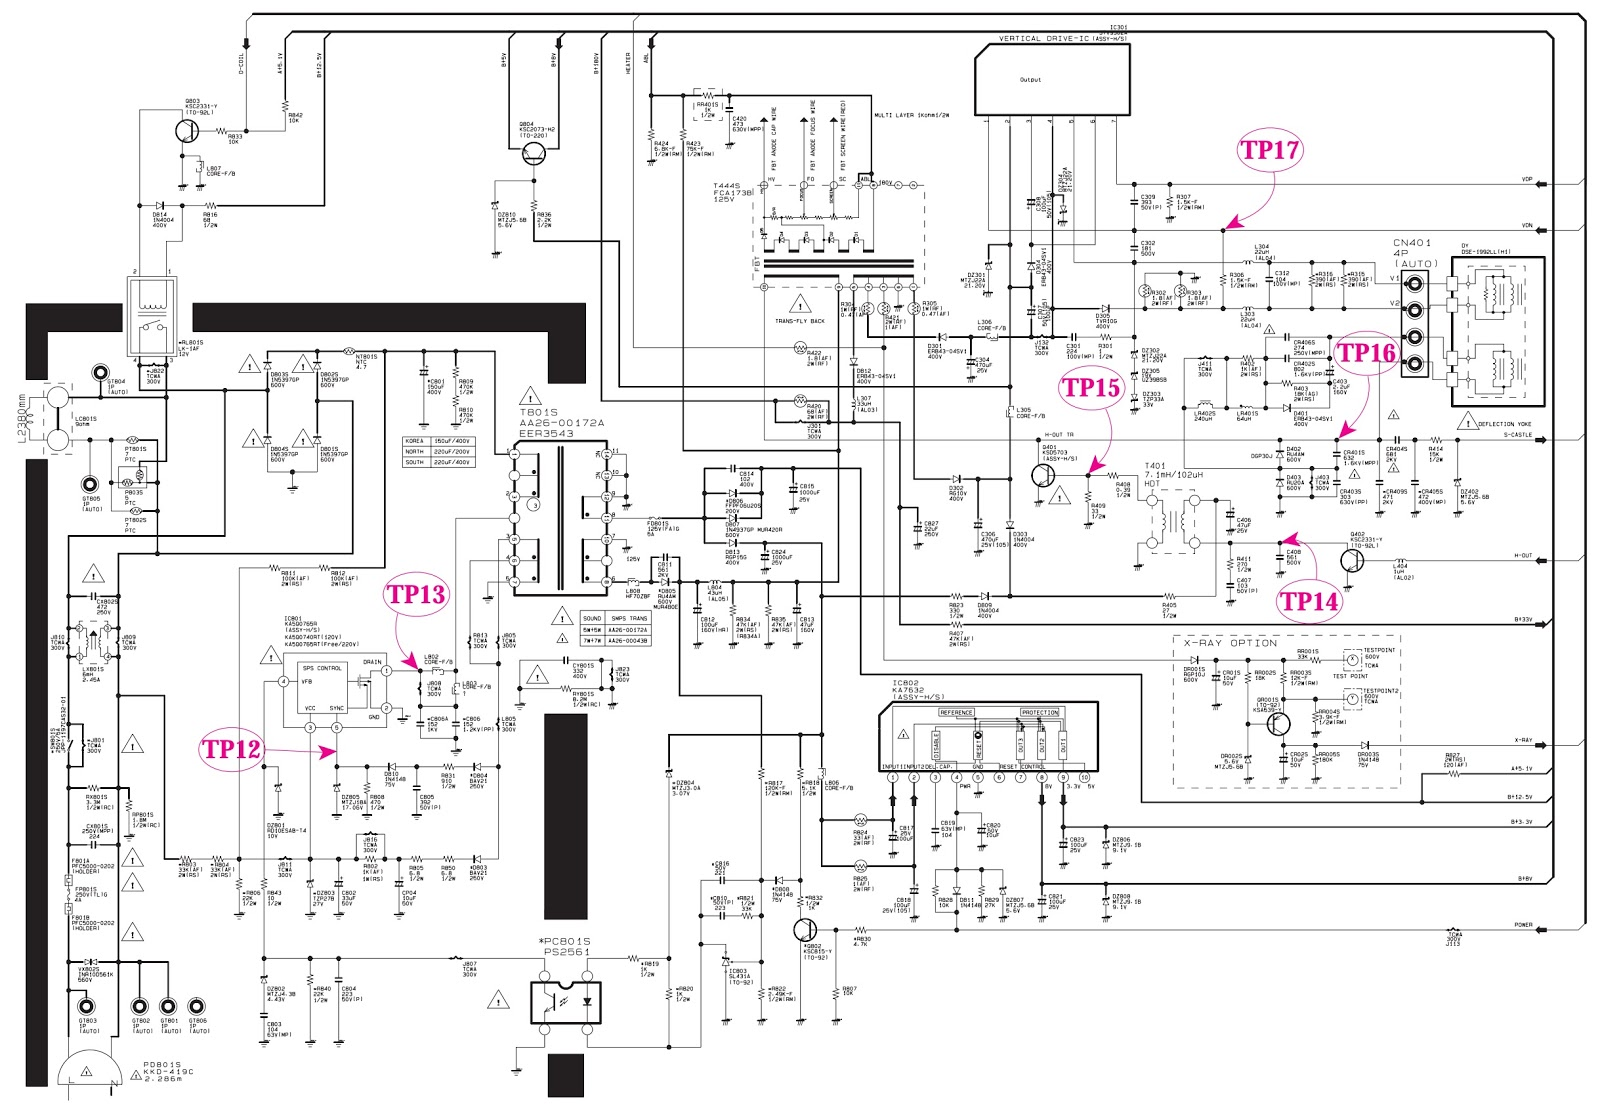 CL21N11%2BSAMSUNG%2BCRT%2BTV CIRCUIT%2BDIAGRAM 2 samsung circuit diagram the wiring diagram readingrat net iMac Desktop A1311 at gsmx.co